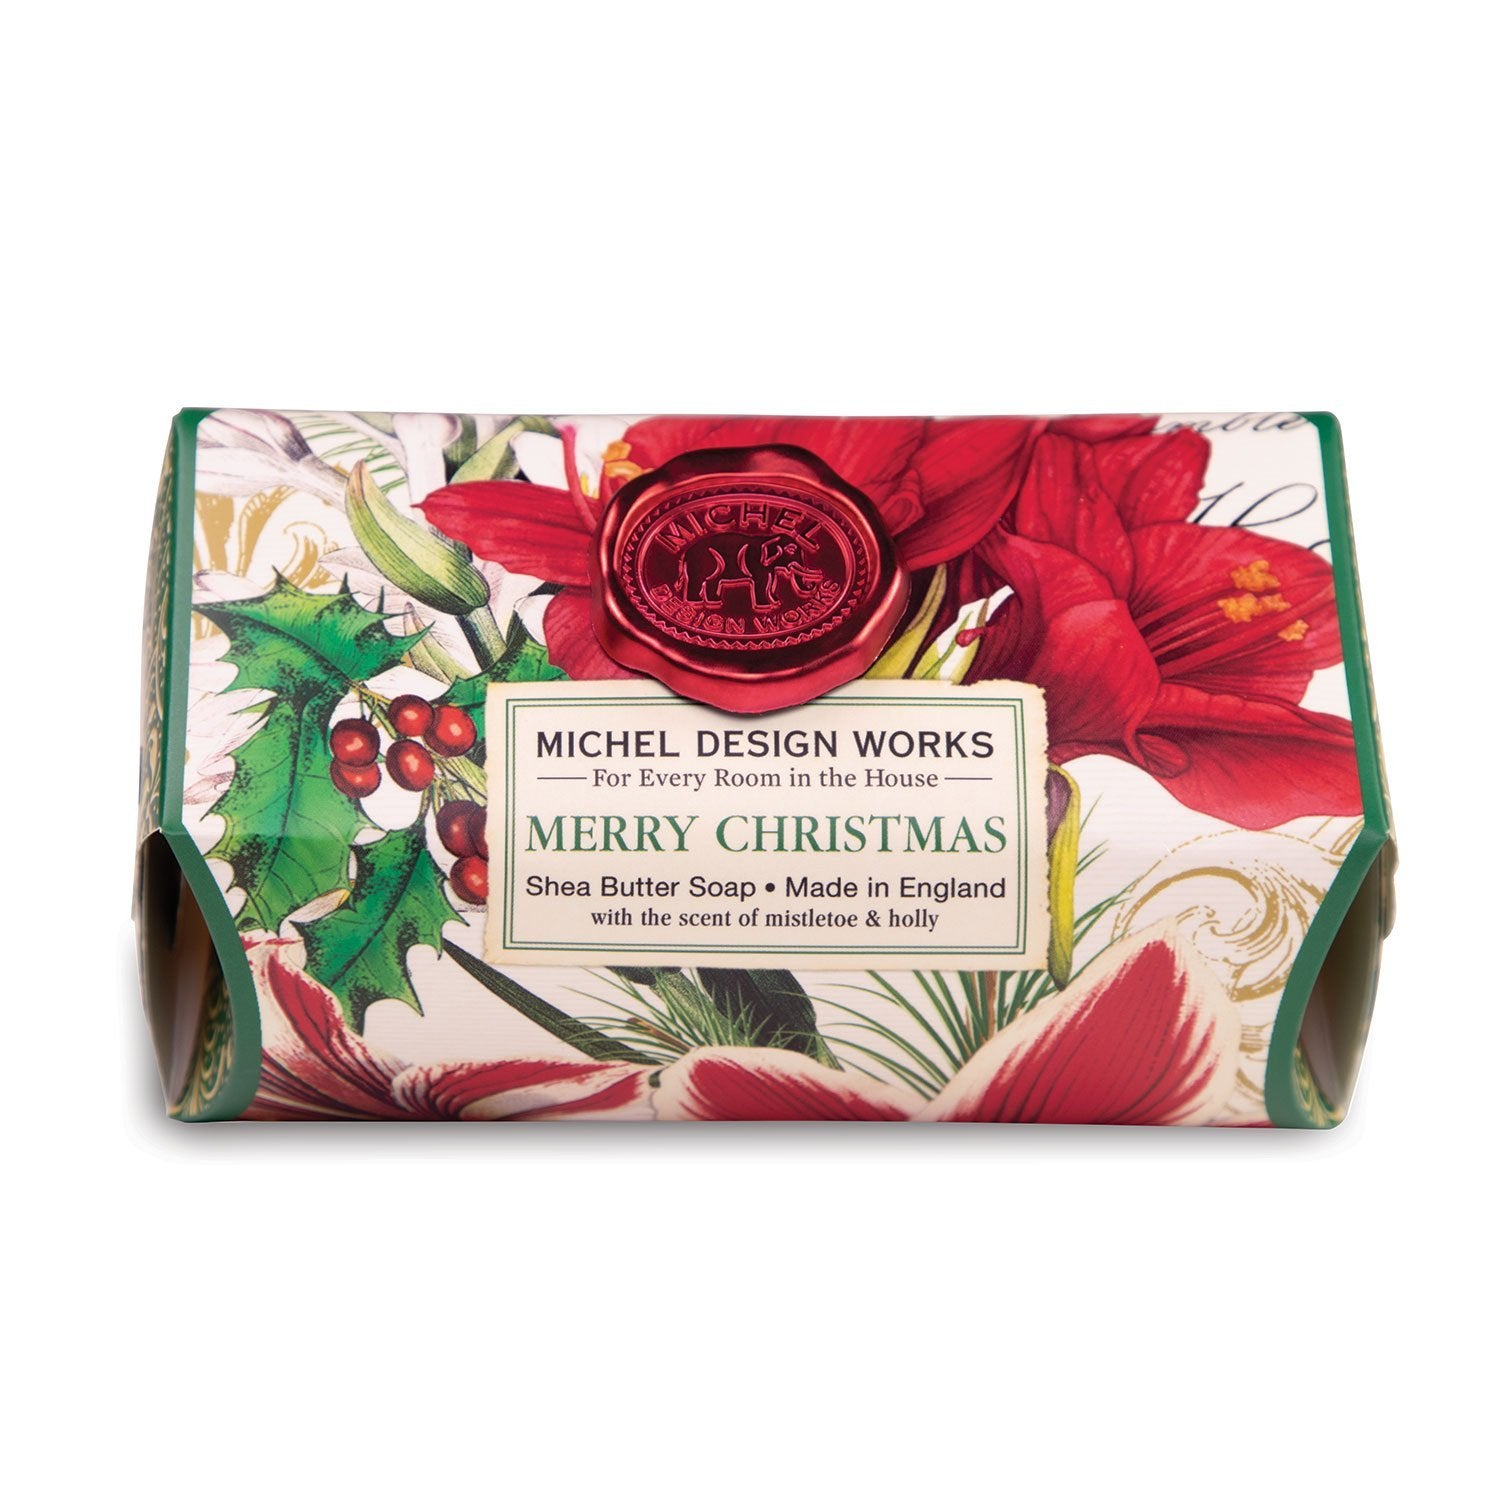 Michel Design Works Large Soap Bar: Merry Christmas